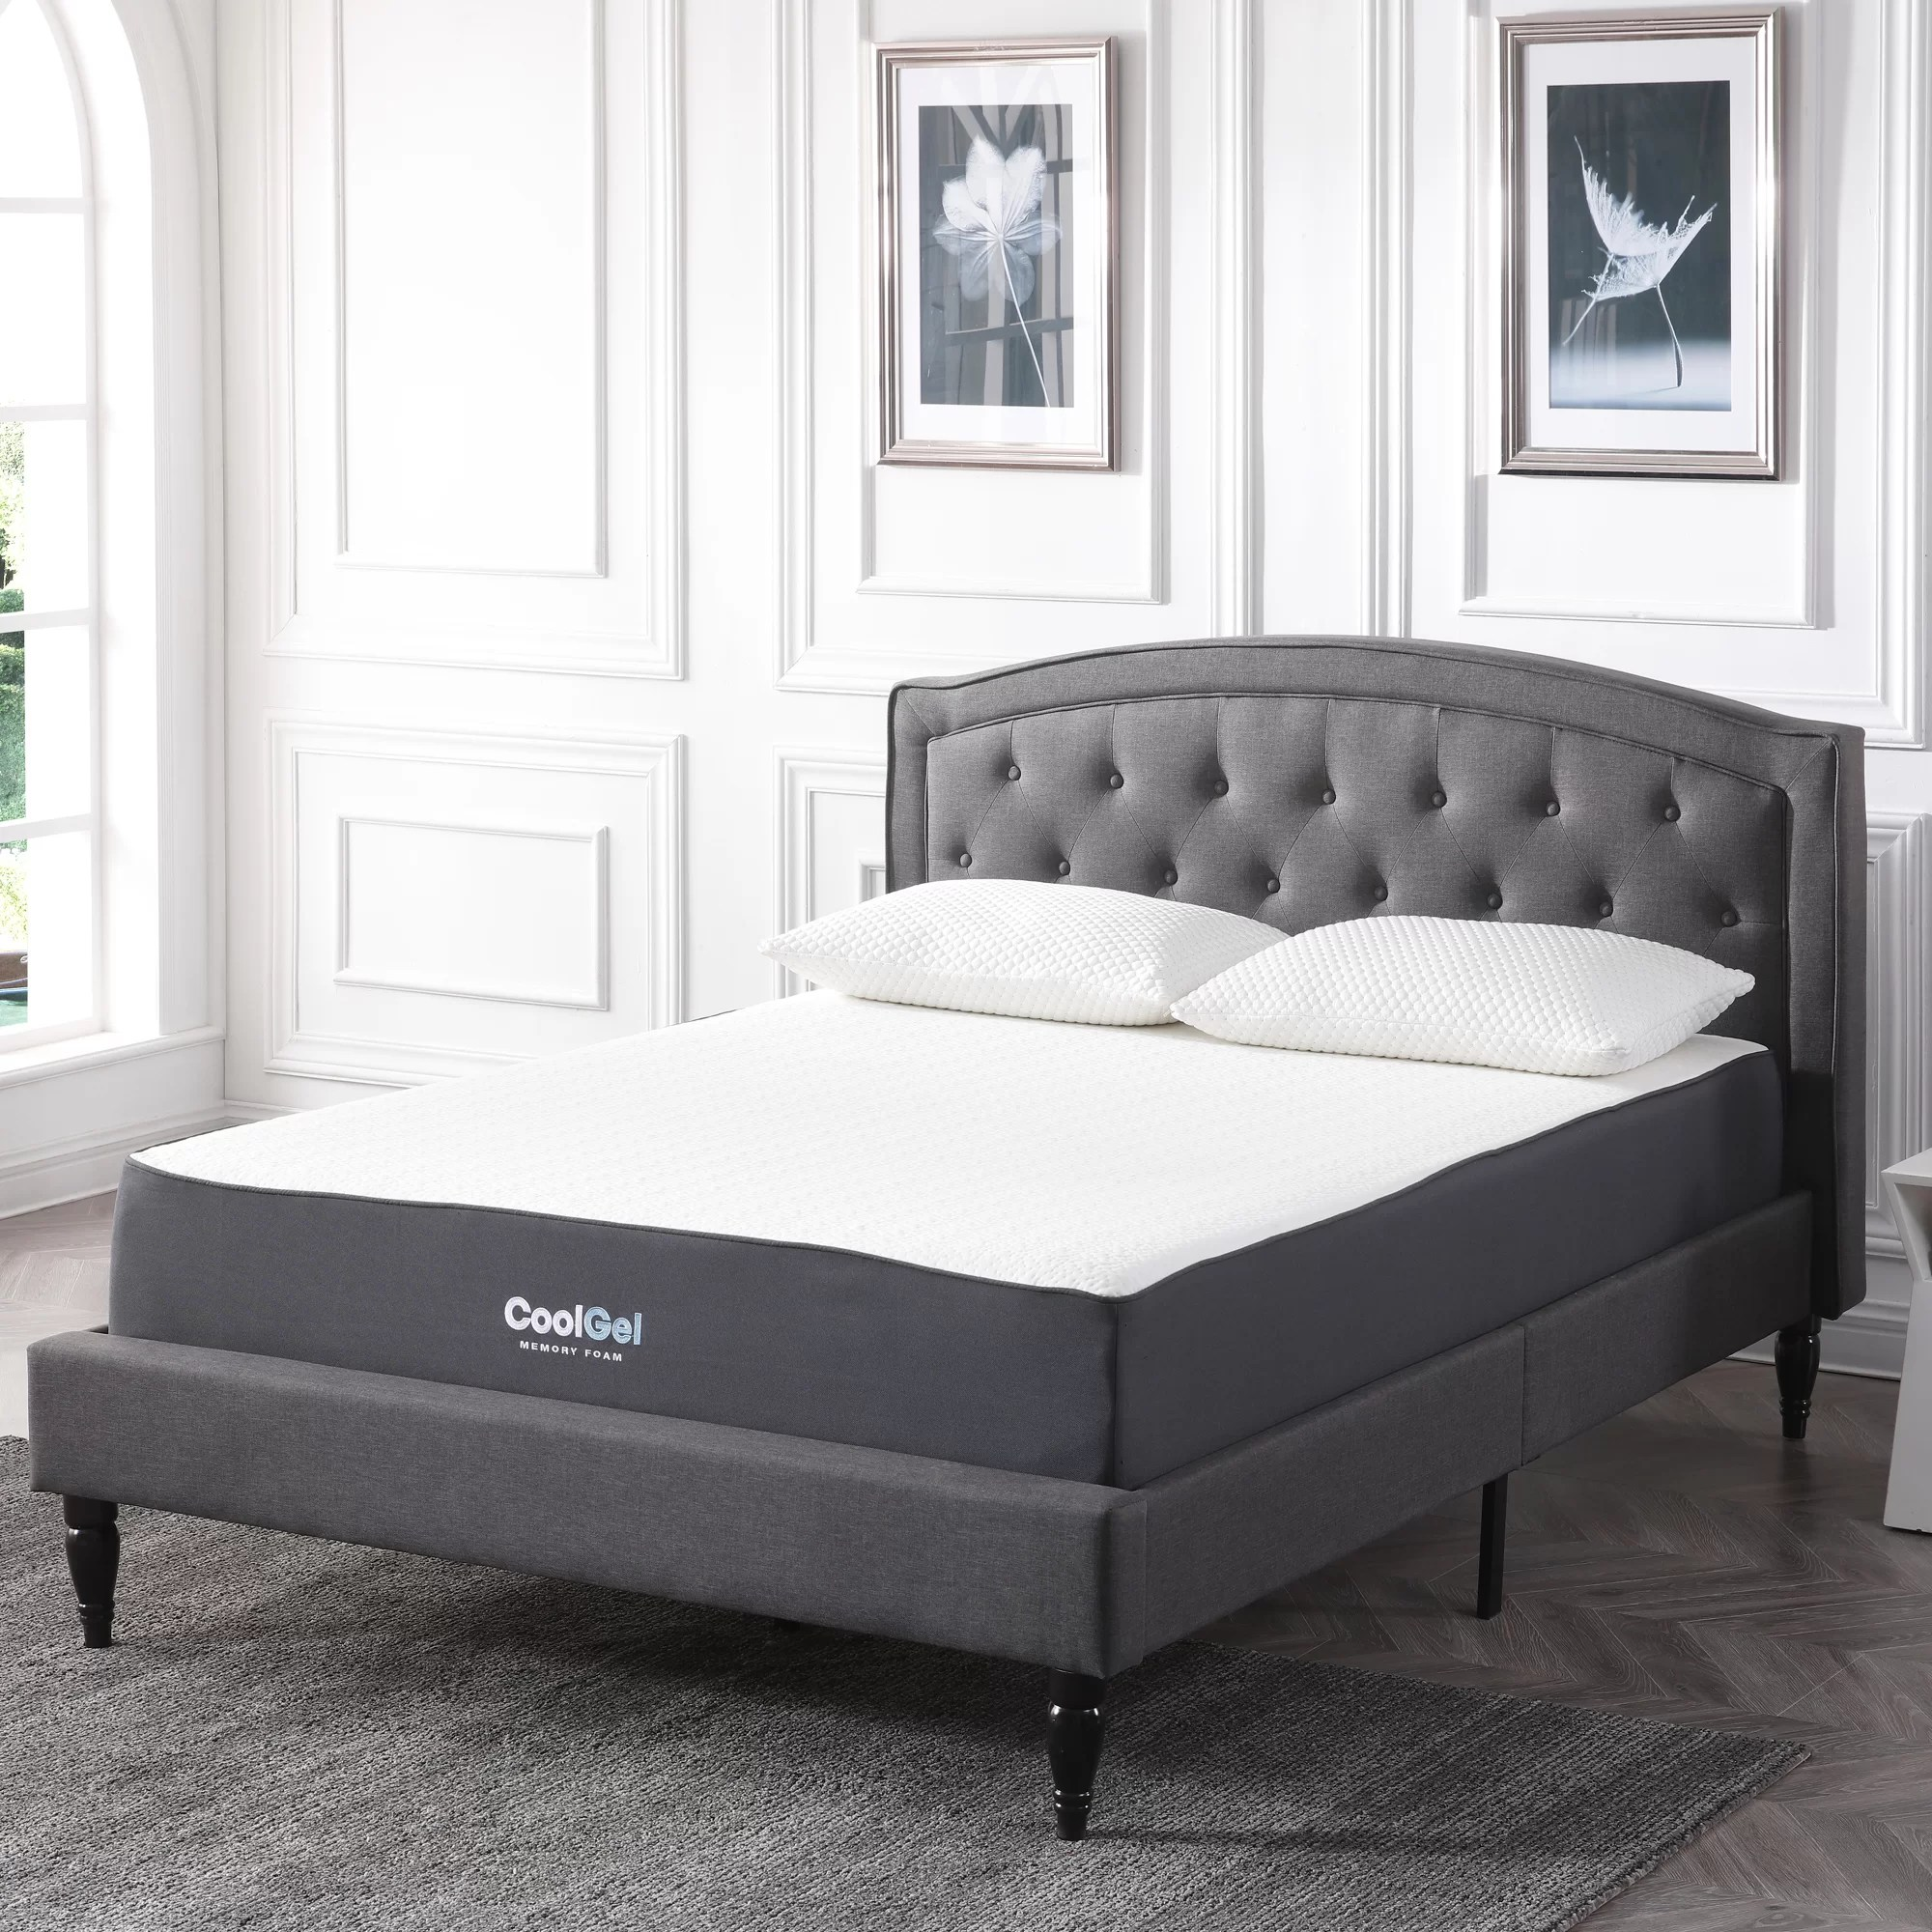 Beds Memory Foam Mattress Alwyn Home 10 5